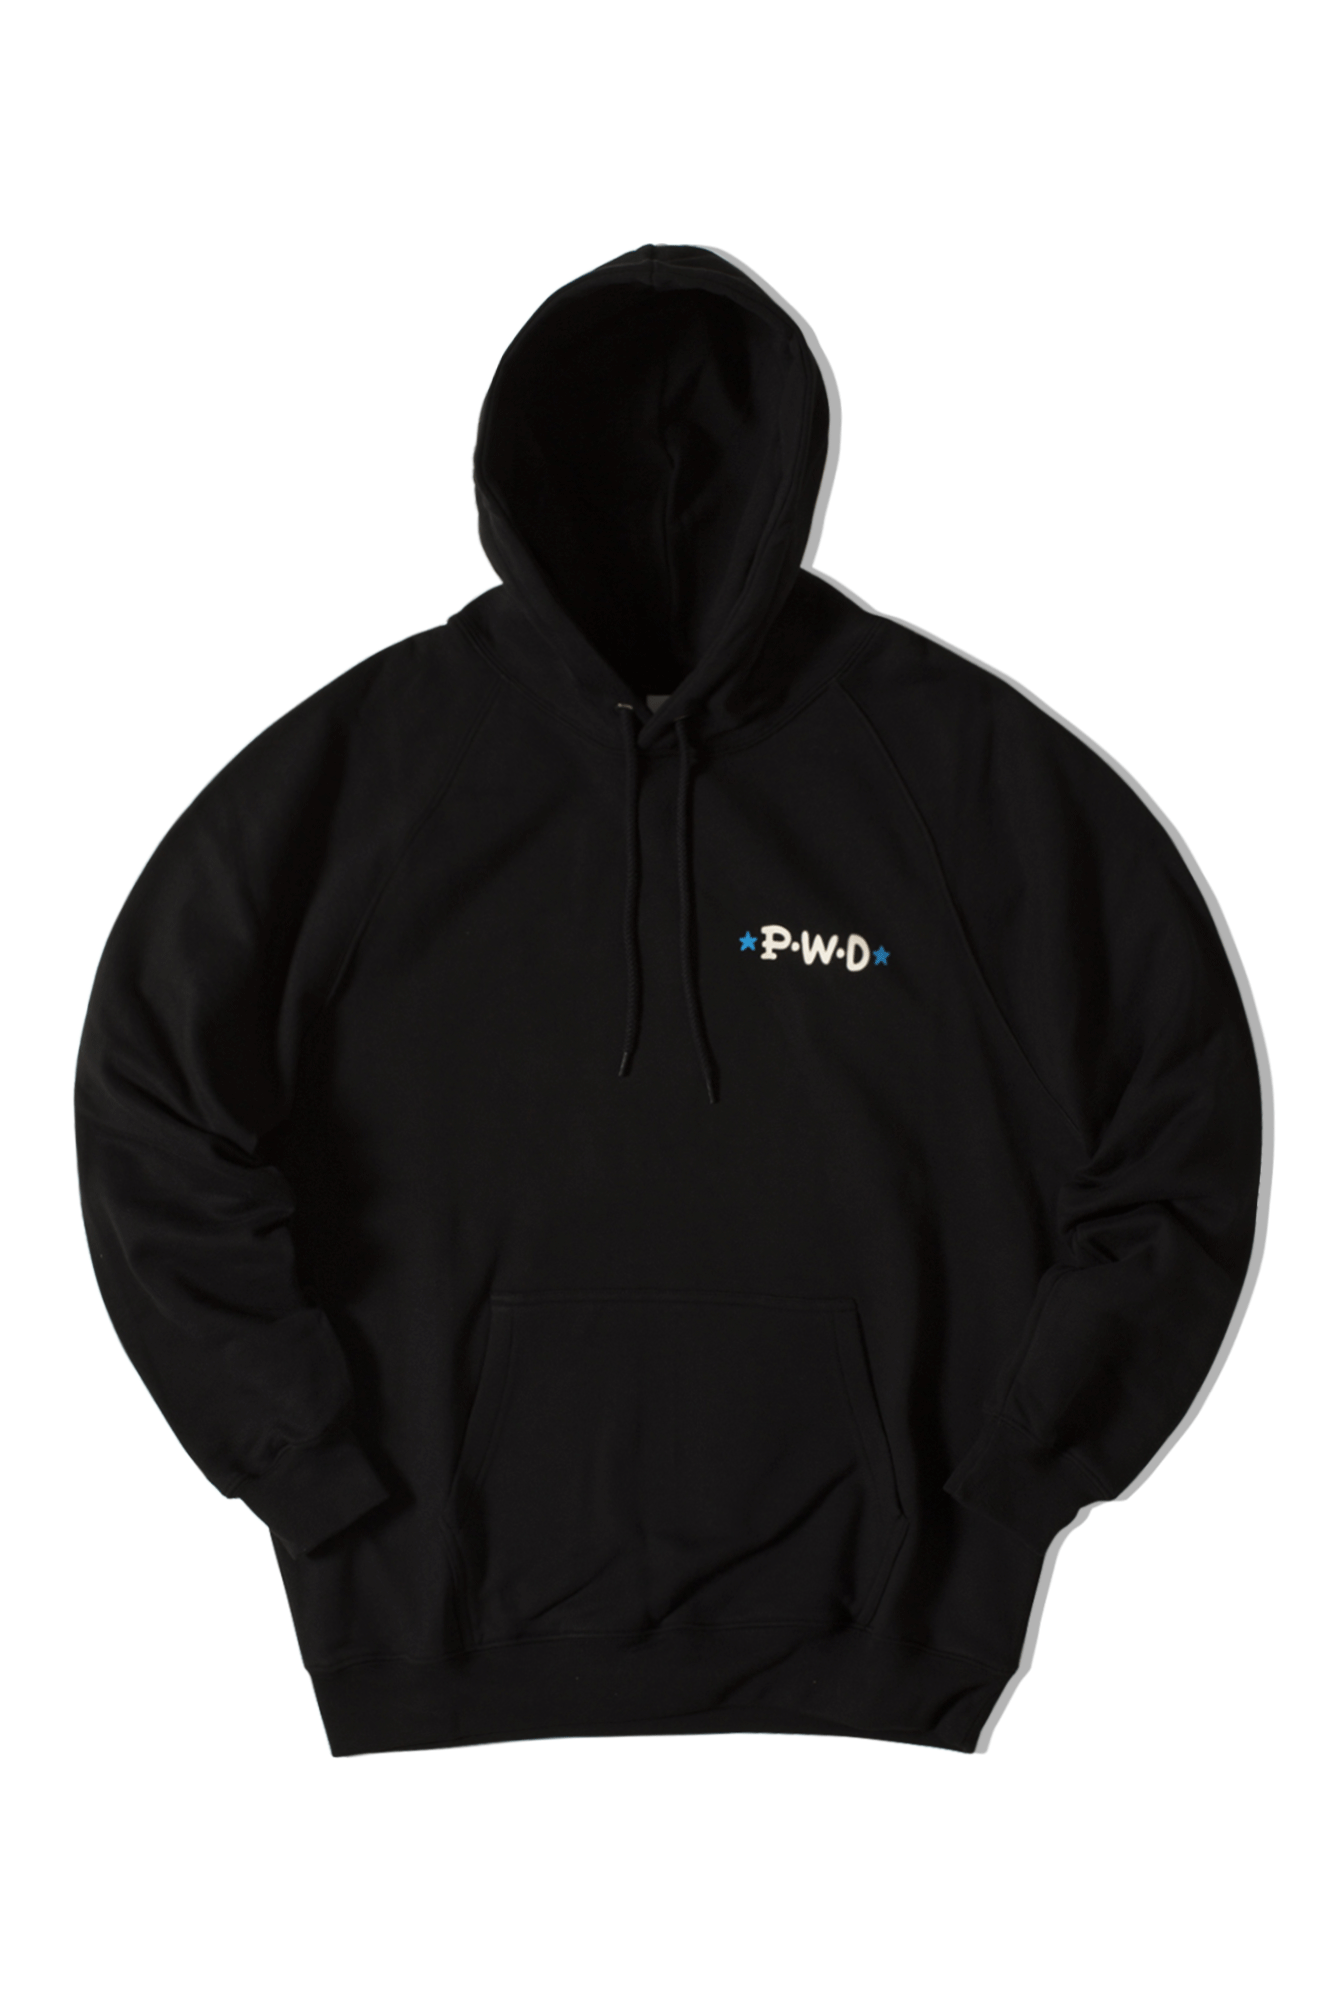 Polar Hooded sweatshirts P.W.D. Hoodie Black POLPWDHOOD#000#BLK#XS - One Block Down